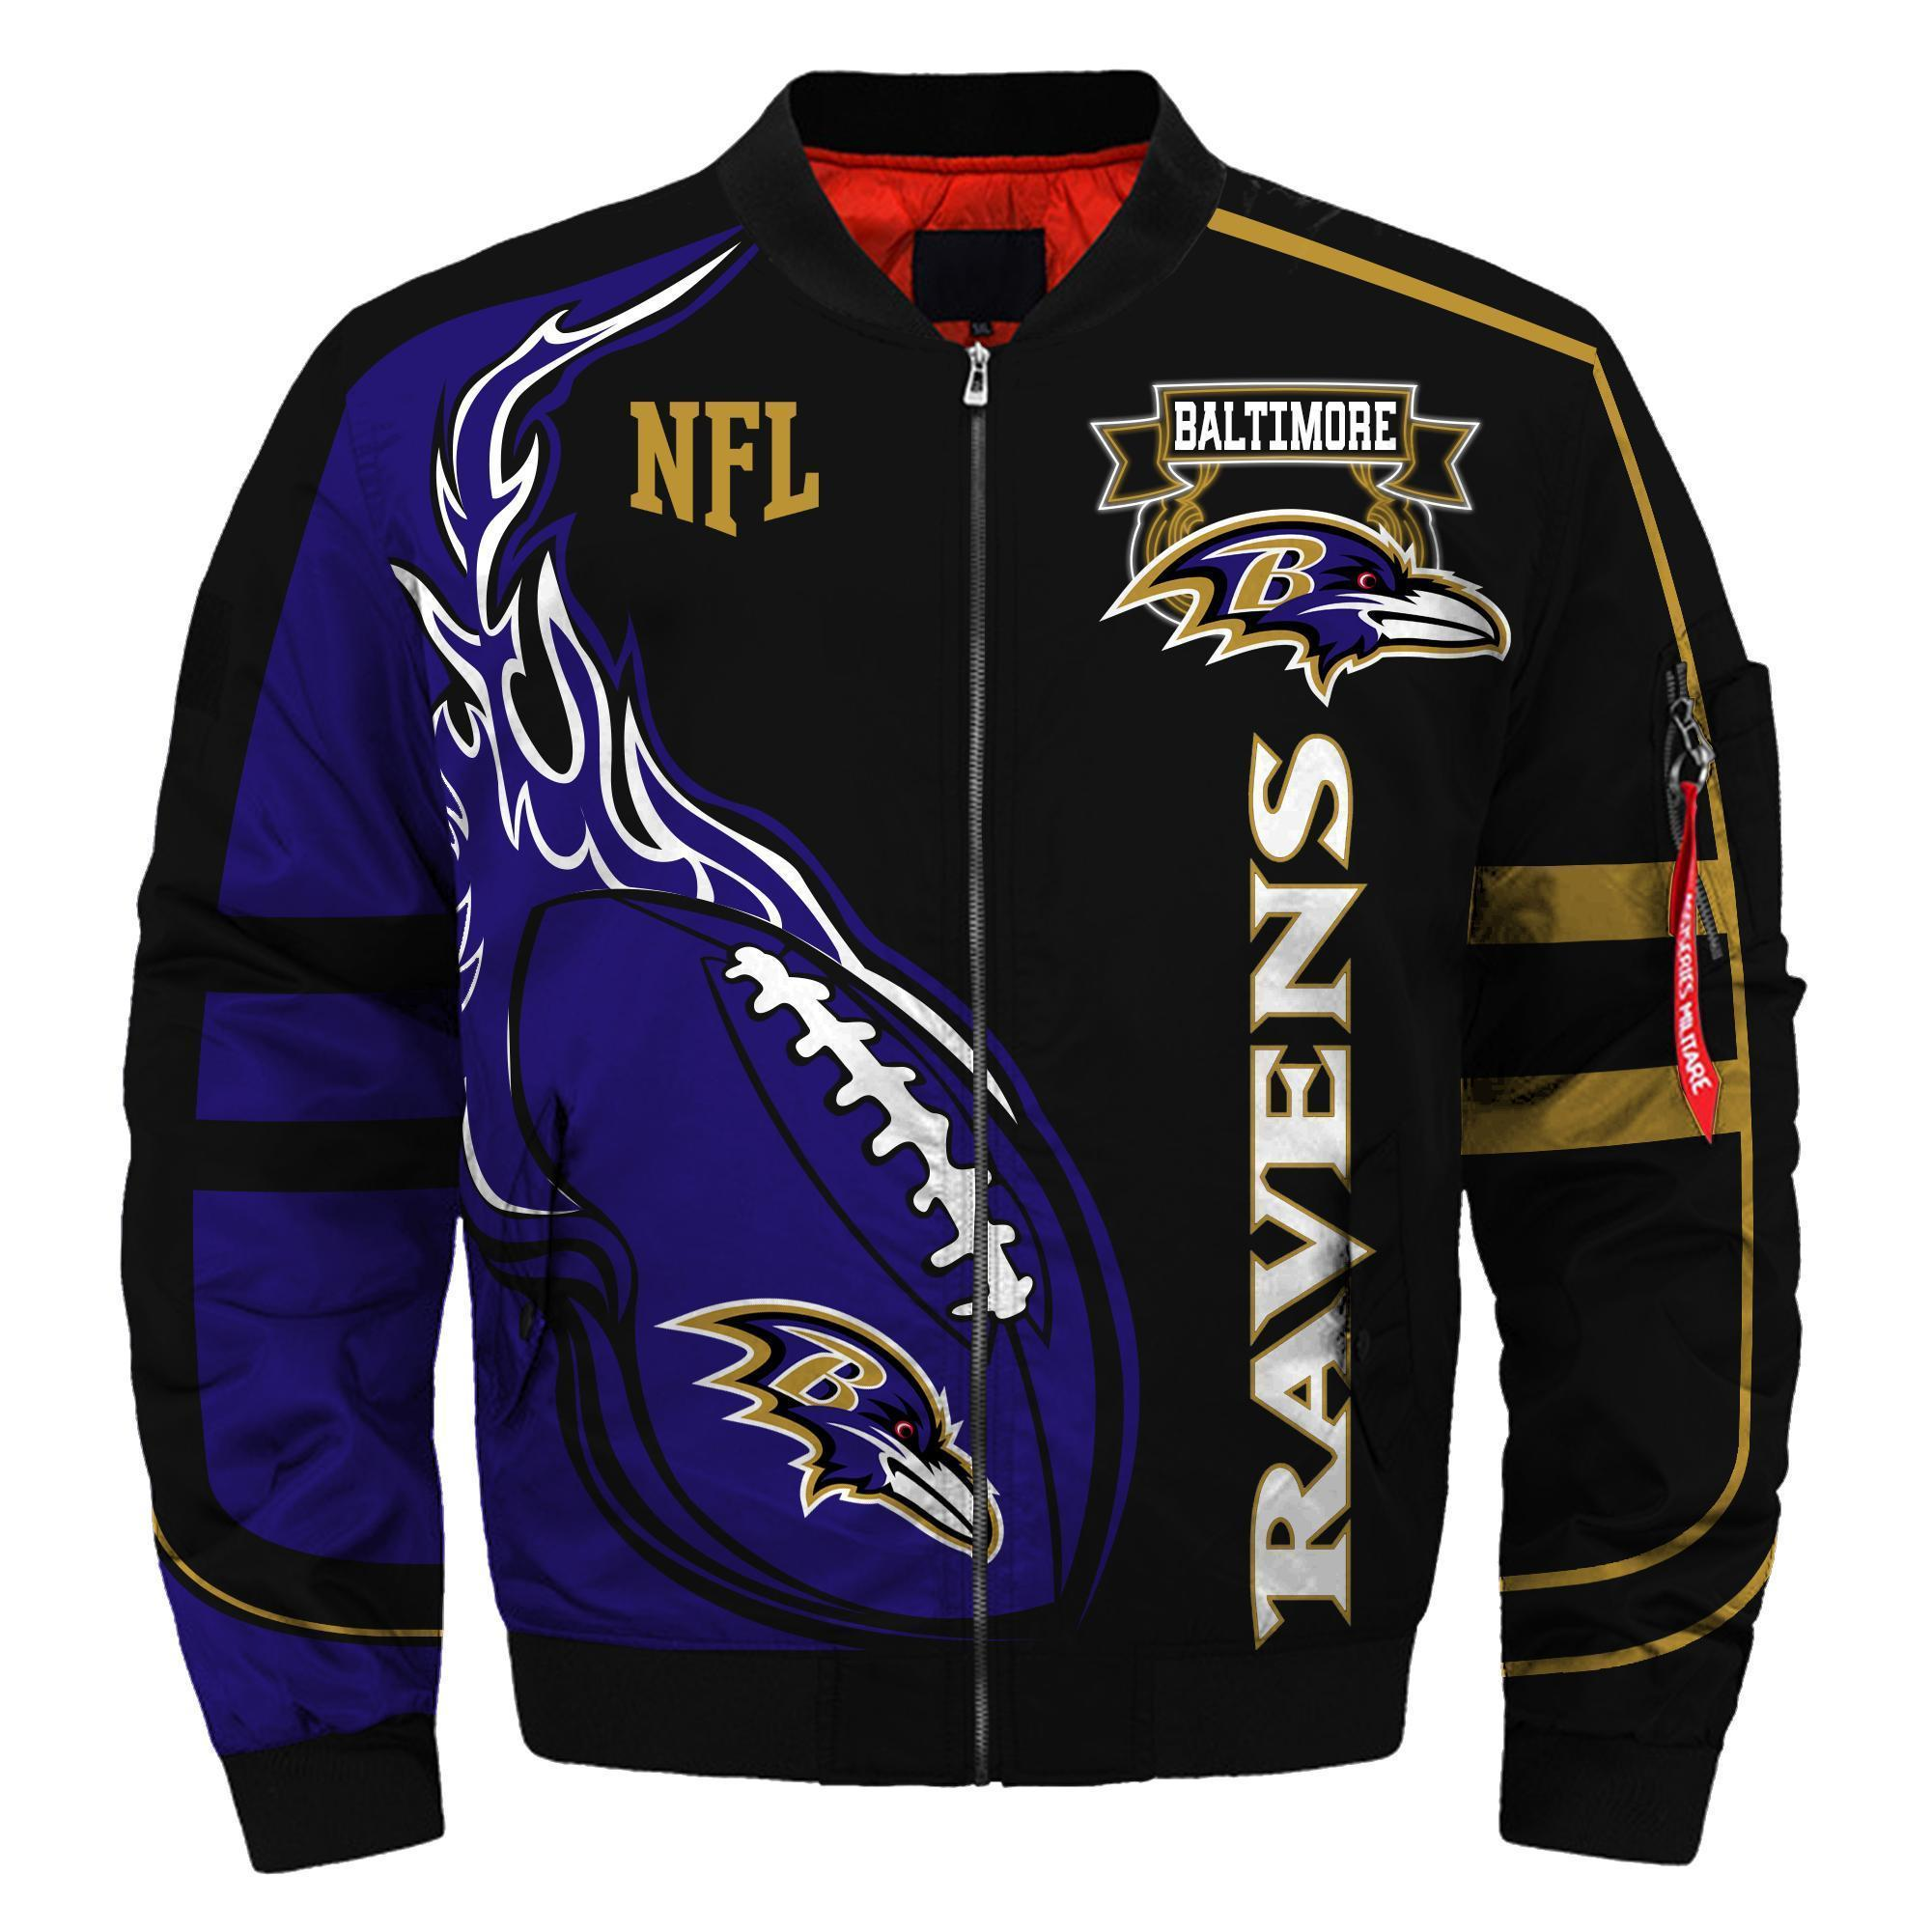 005 Nfl Baltimore Ravens Custom North Face Winter Jacket Bomer High Quality Plus Size Jacket